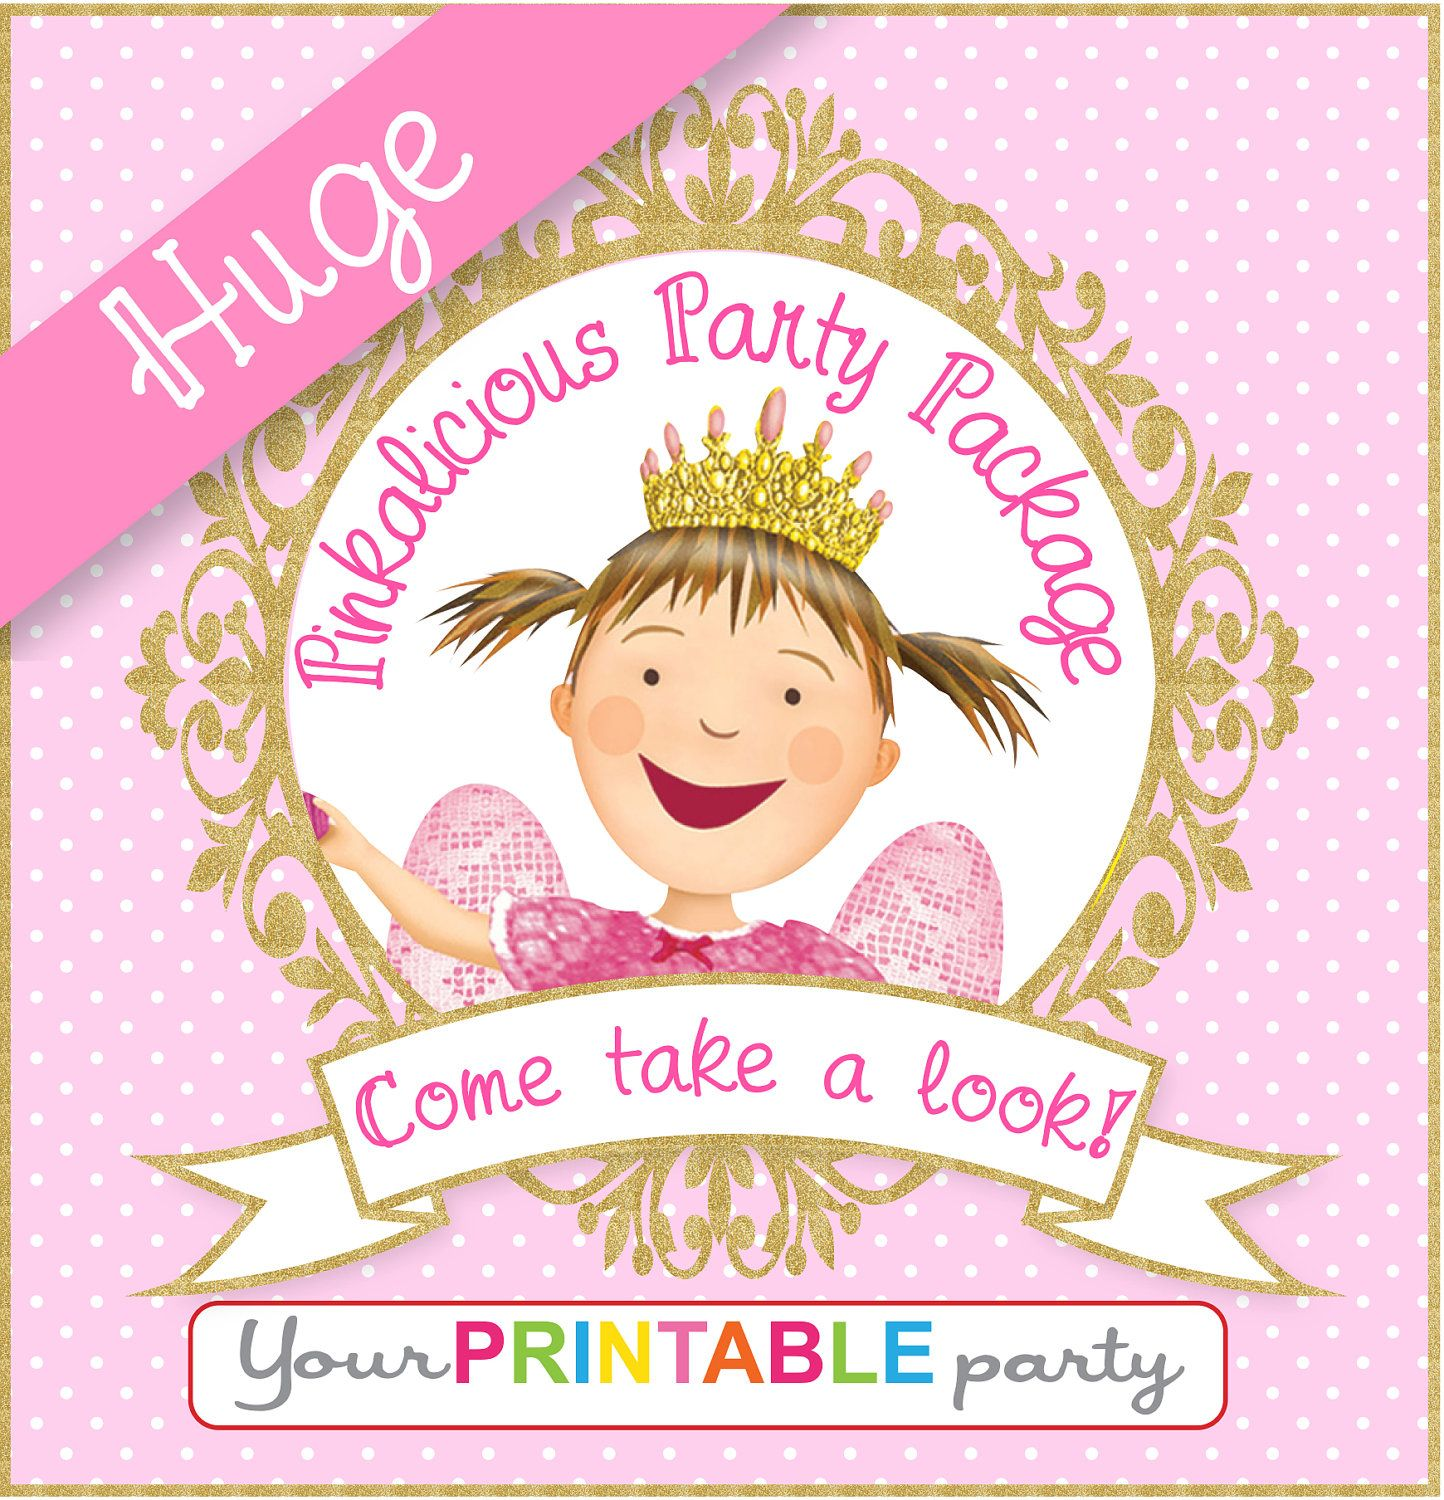 Pinkalicious Party Invitations examples of essay about myself – Pinkalicious Party Invitations